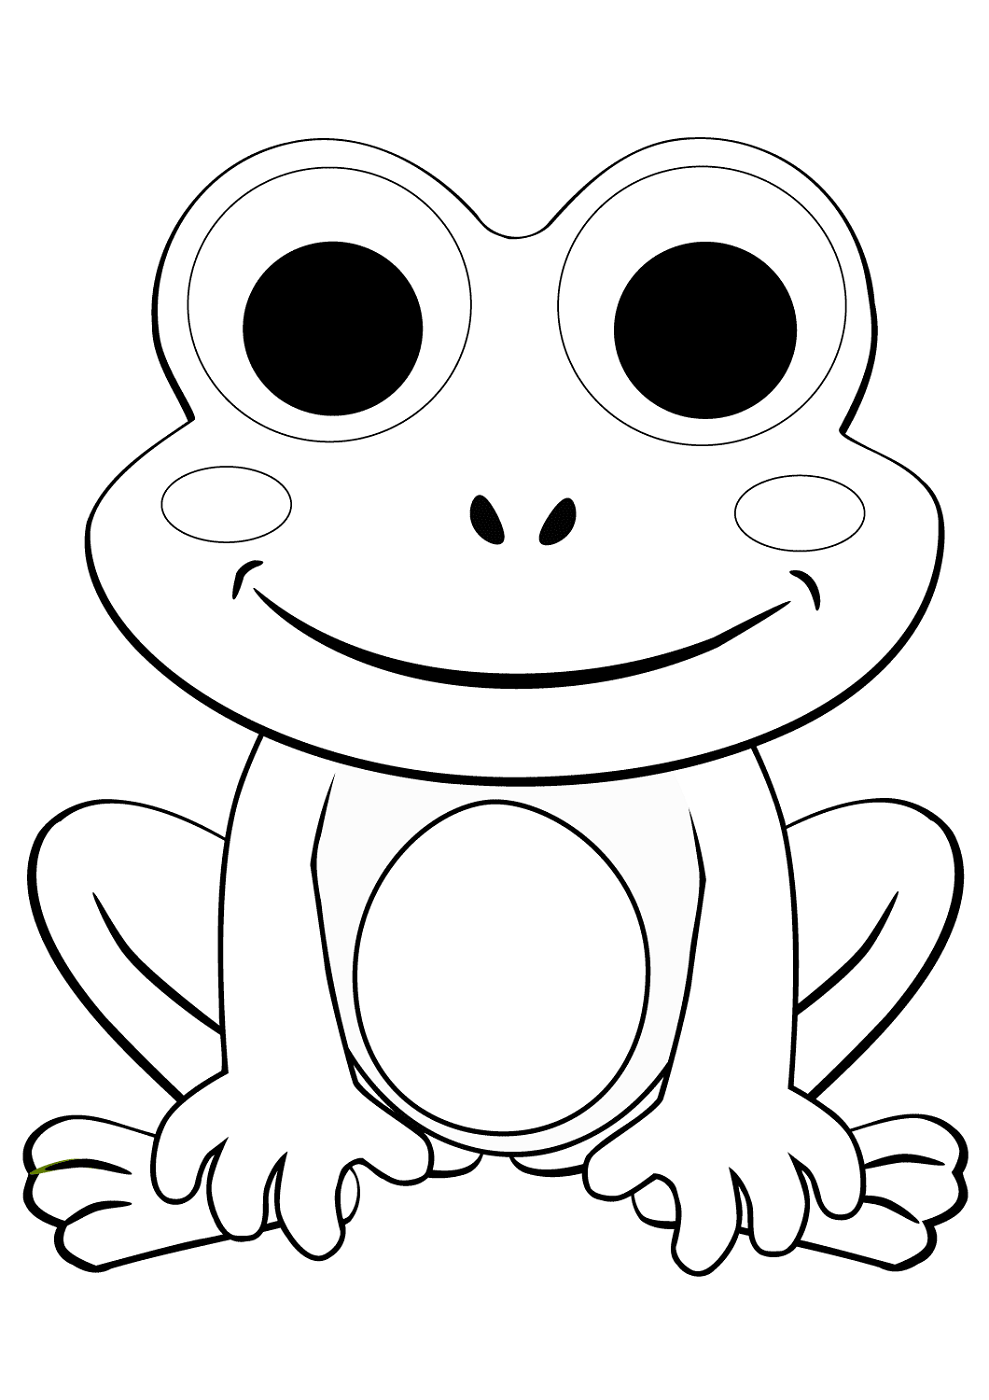 Frog Coloring Pages Kids Learning Activity Frog